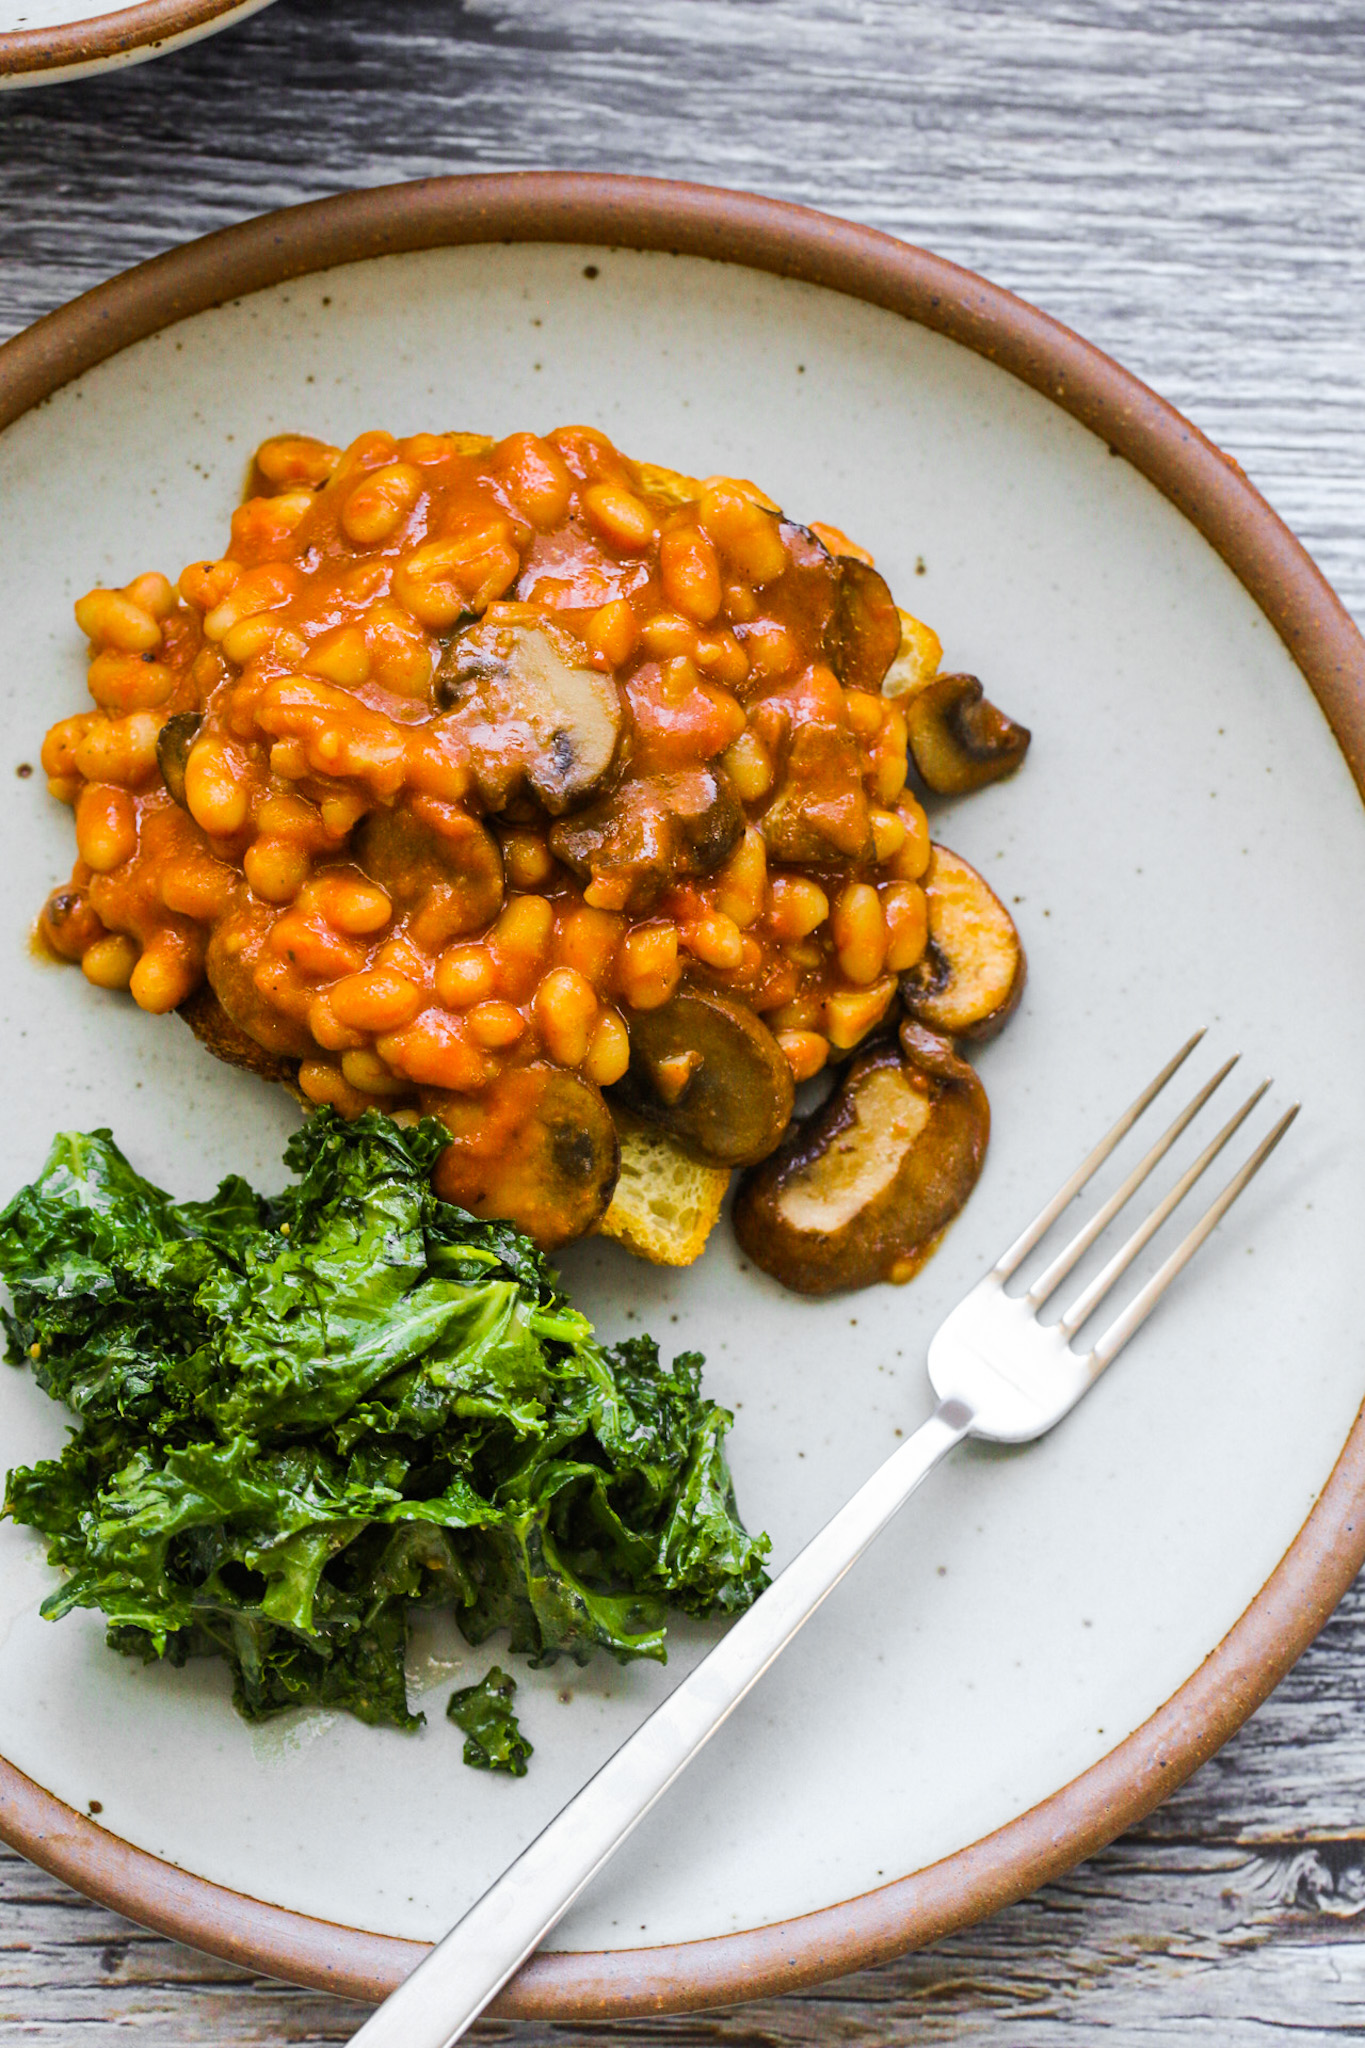 baked beans with mushrooms and kale